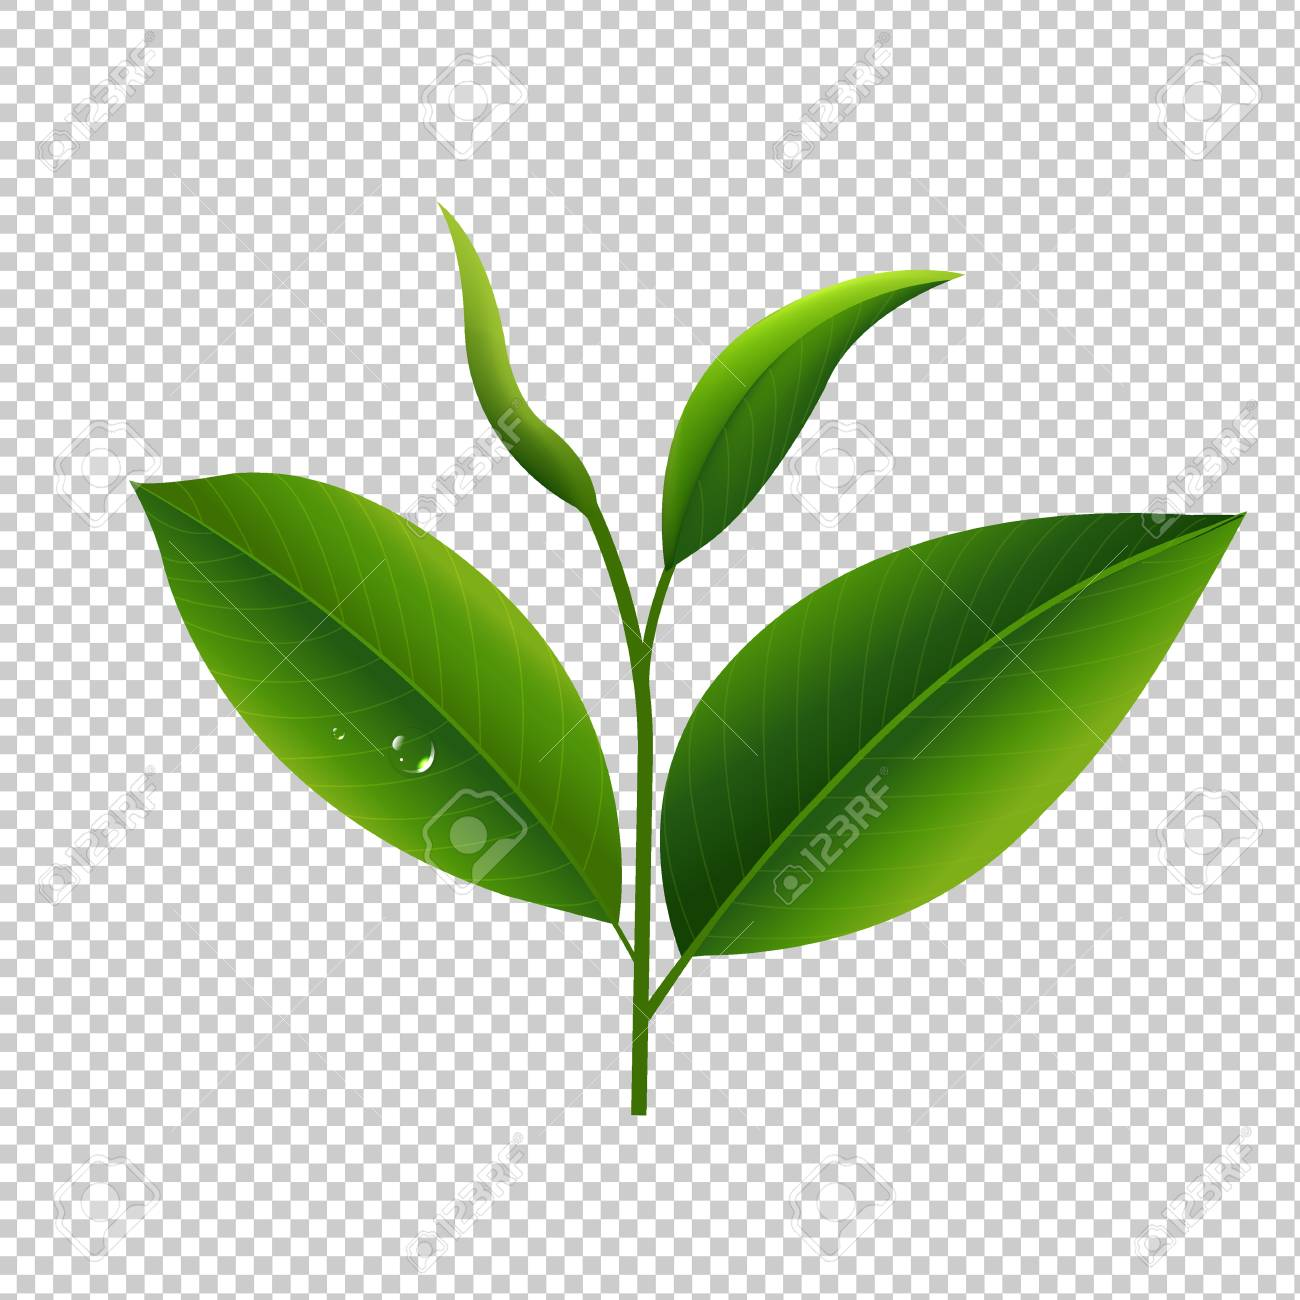 Plants transparent clipart picture royalty free download Plants clipart transparent background - 102 transparent clip ... picture royalty free download